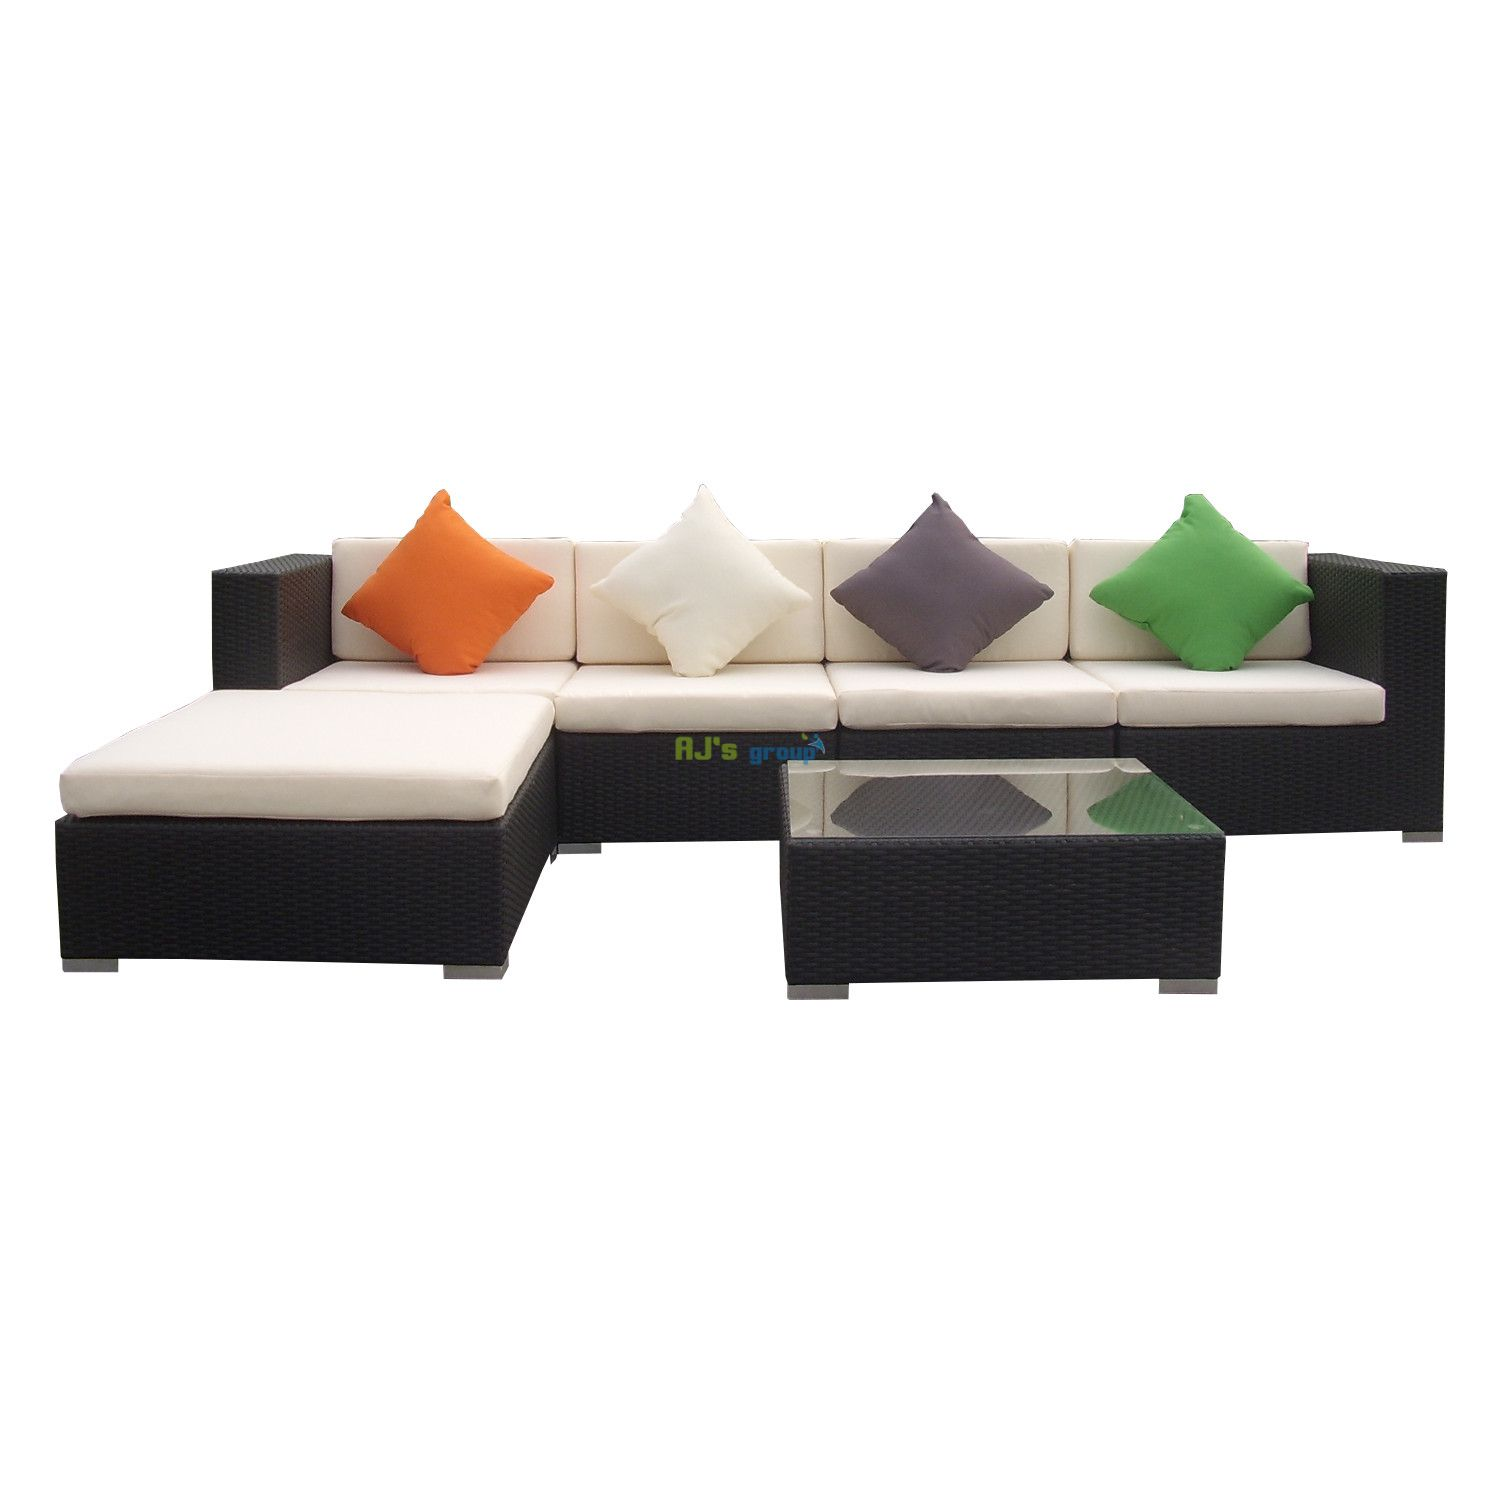 Gartenmobel Rattan Lounge Set